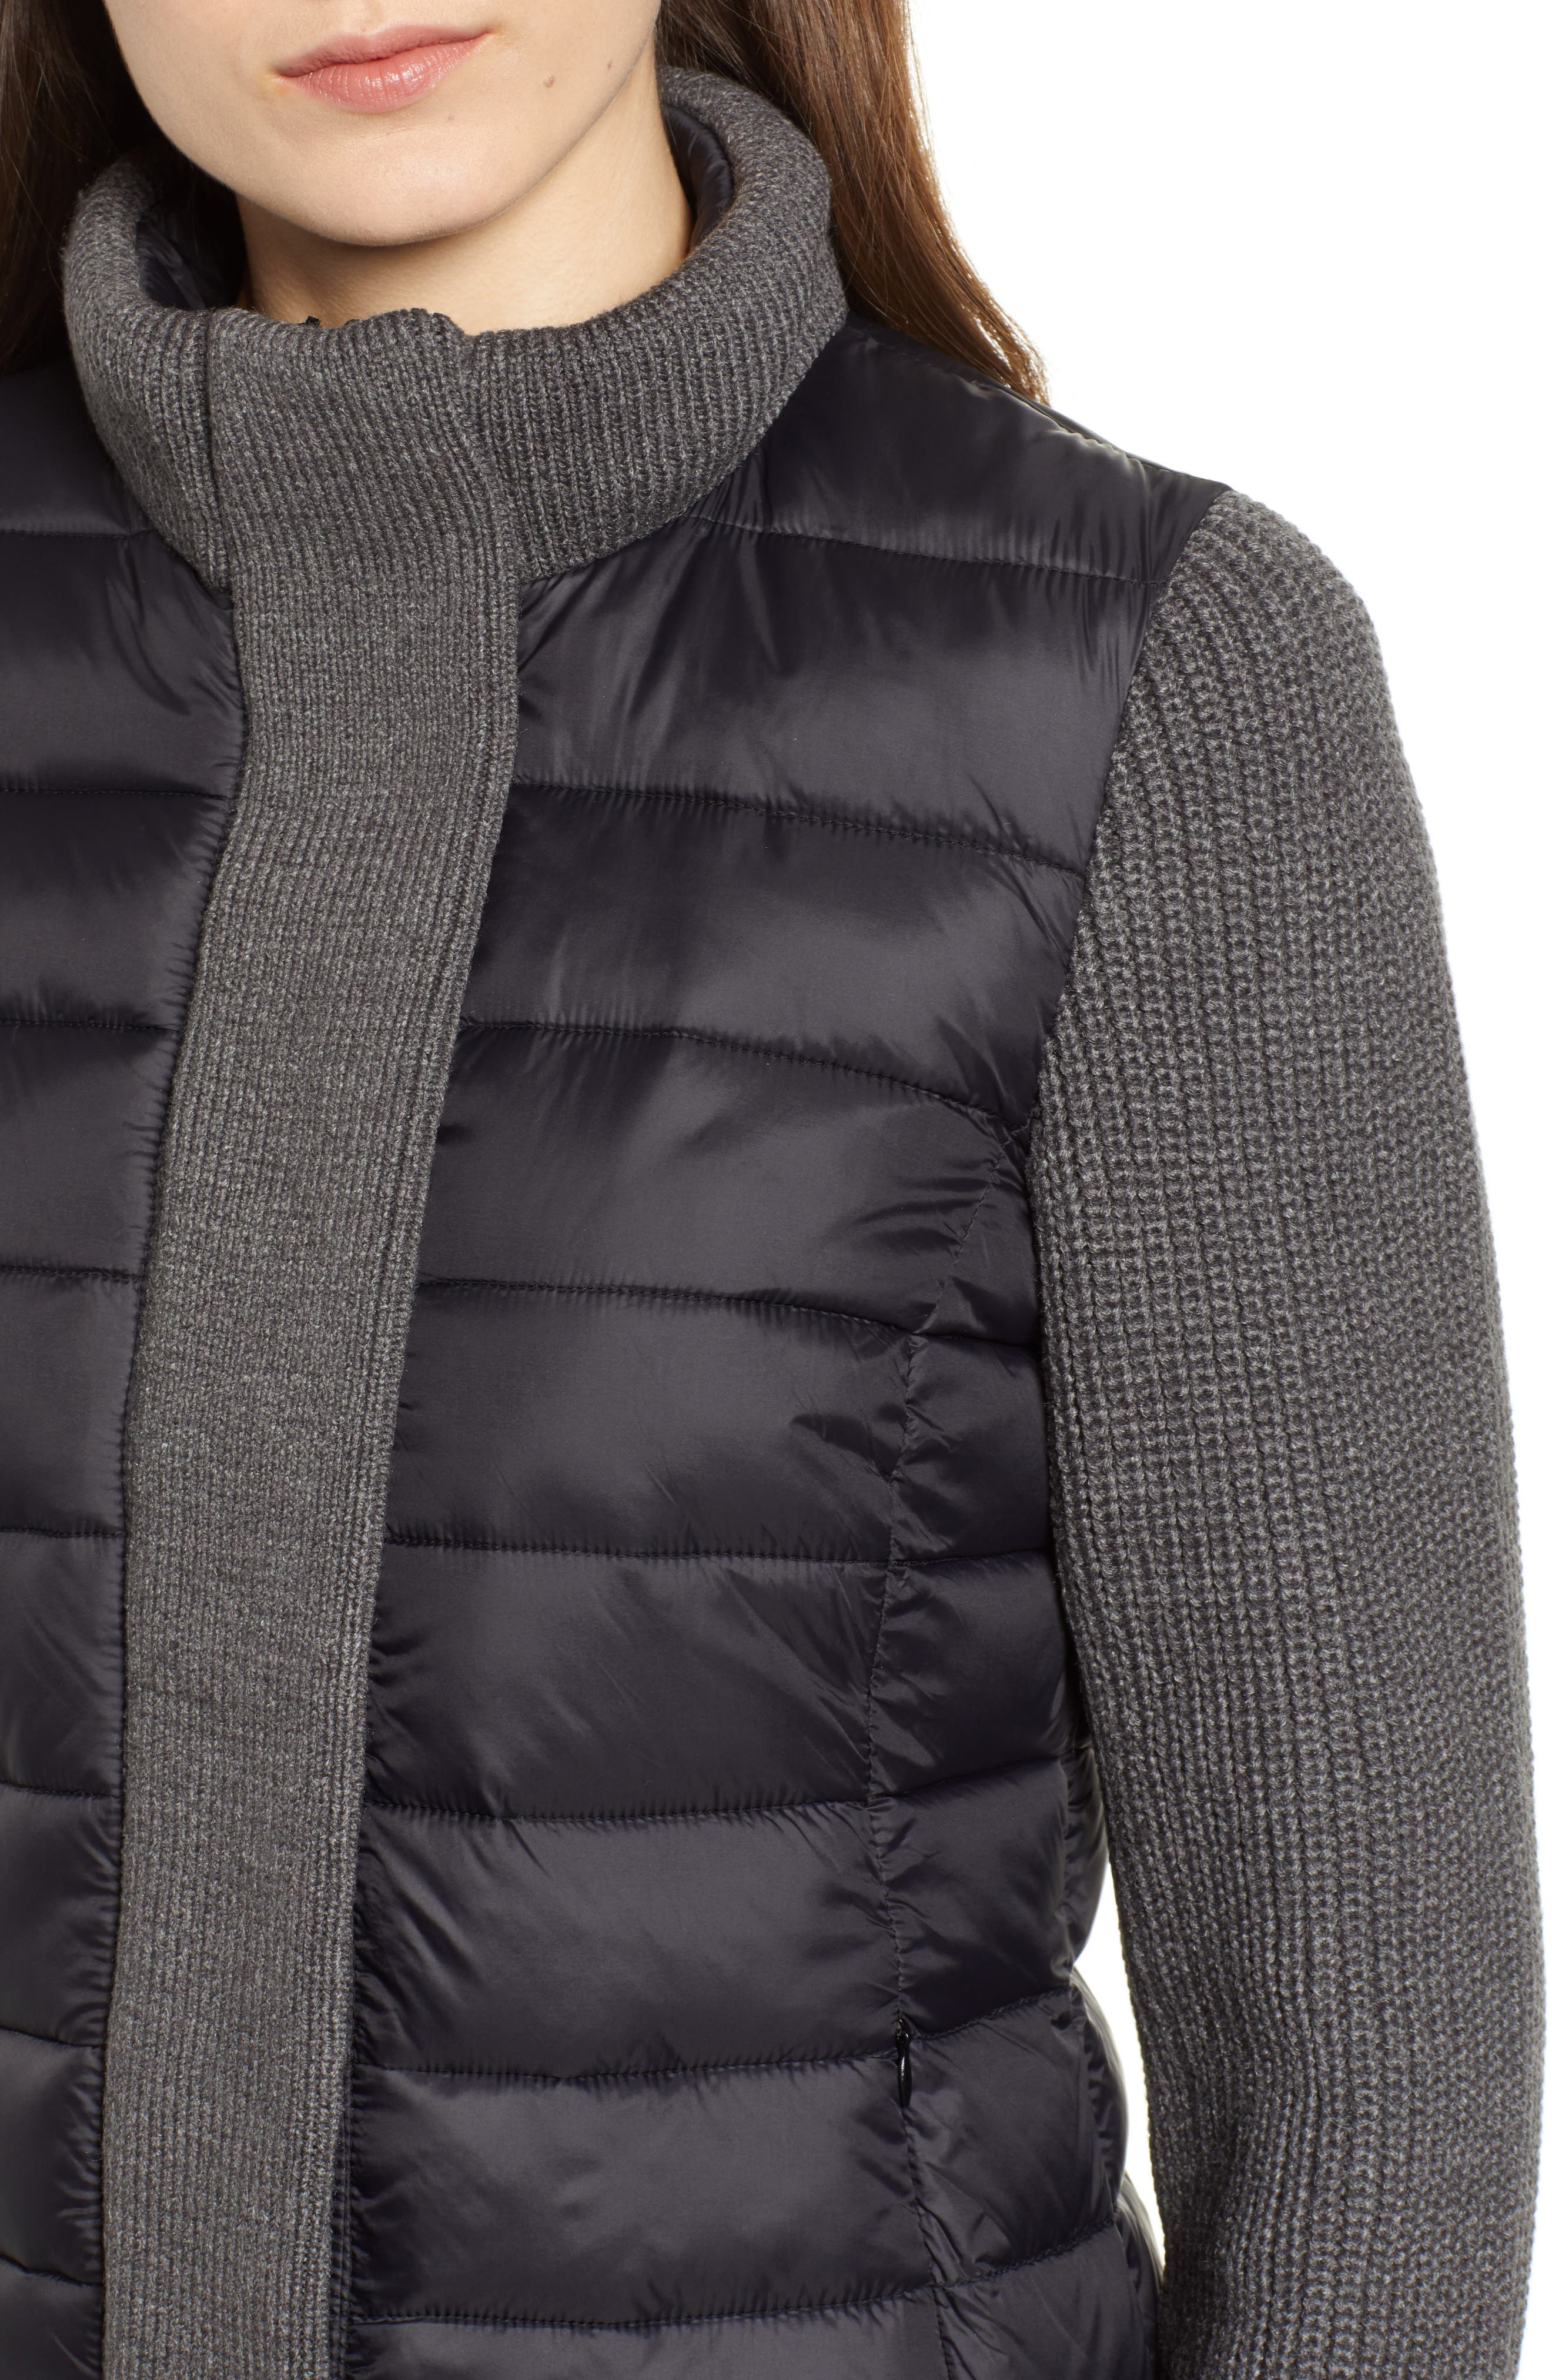 MARC NEW YORK, Mark New York Packable Knit Trim Puffer Jacket, Alternate thumbnail 5, color, BLACK/ GREY